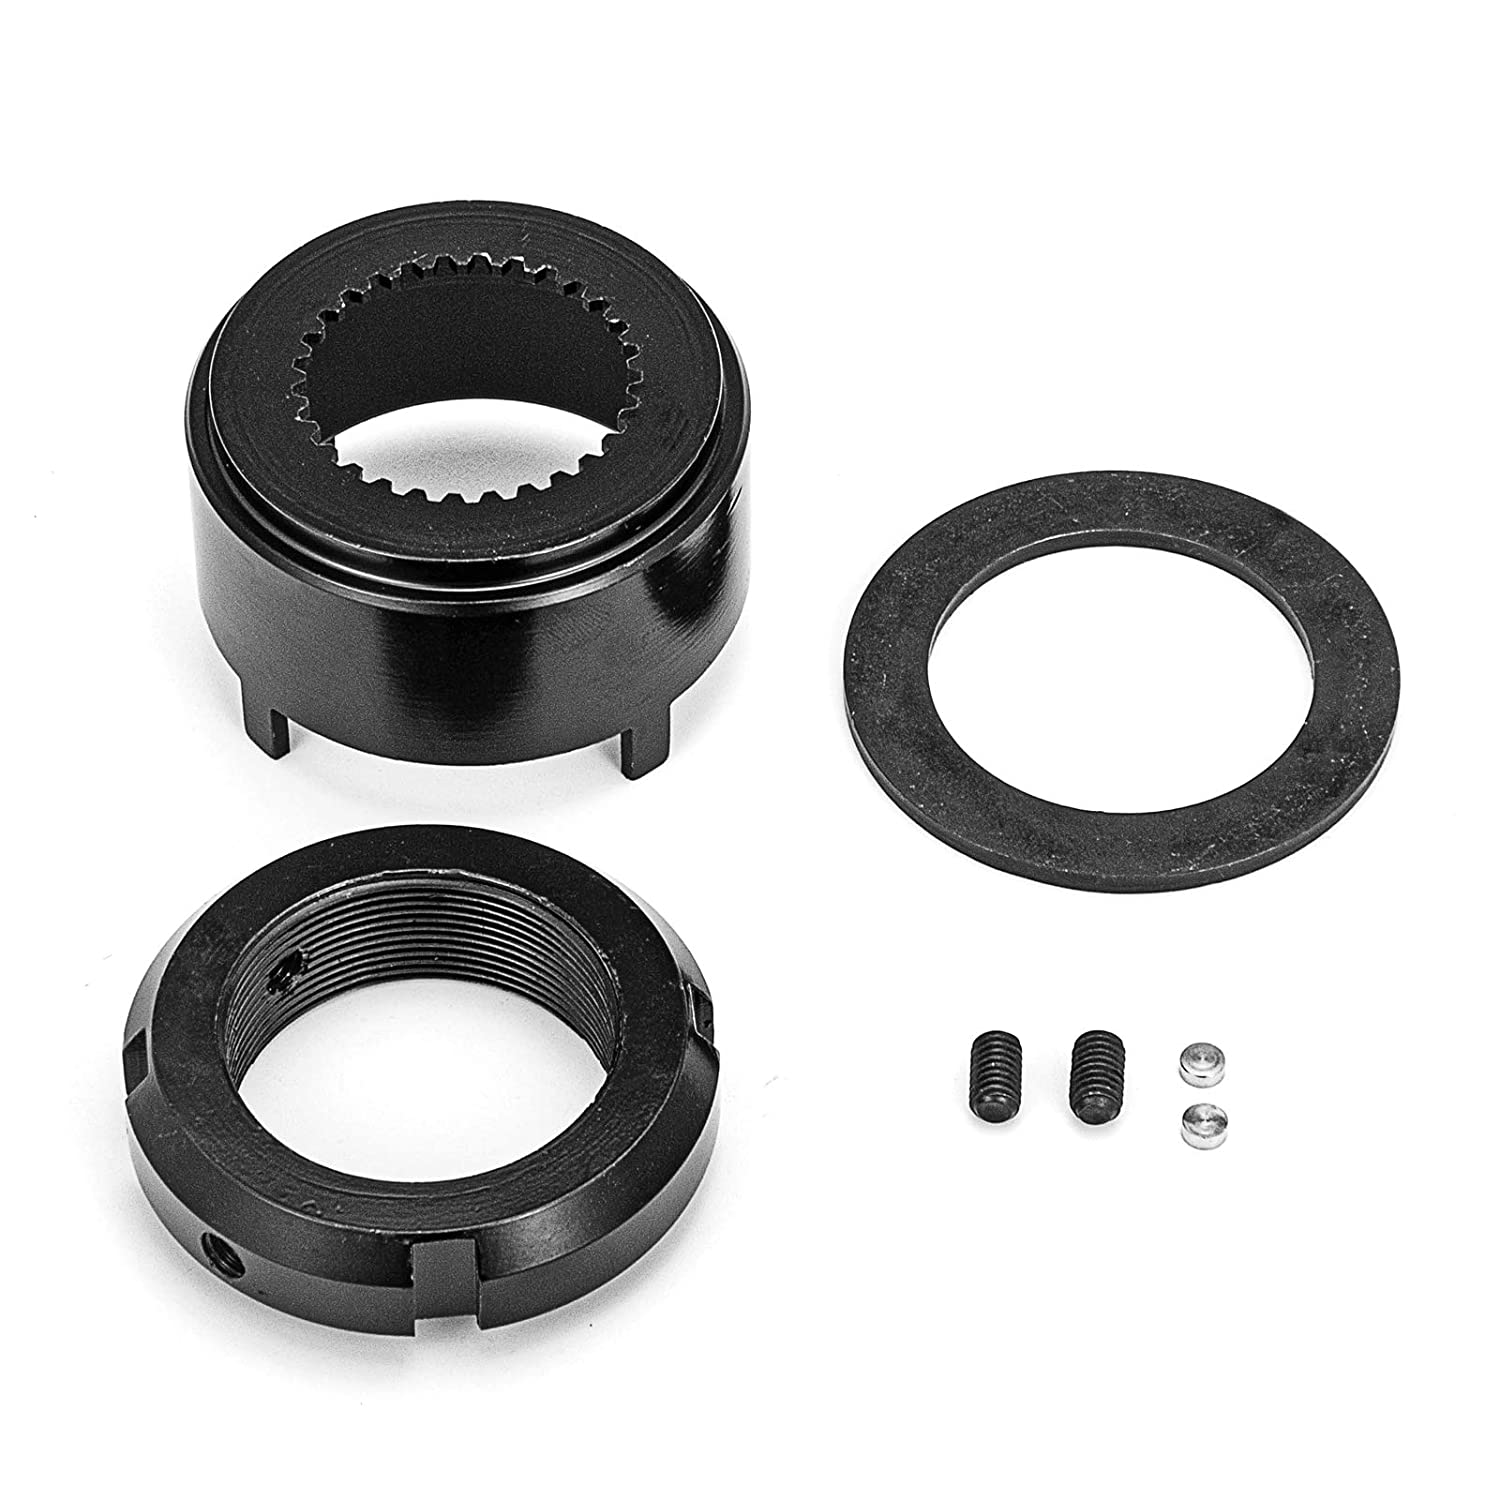 WeiSen 5th Gear Repair//Fix Tool Lock Nut & Retainer Upgrade Kit For Dodge Ram 2500//3500 4X4 5.9L Cummins NV4500